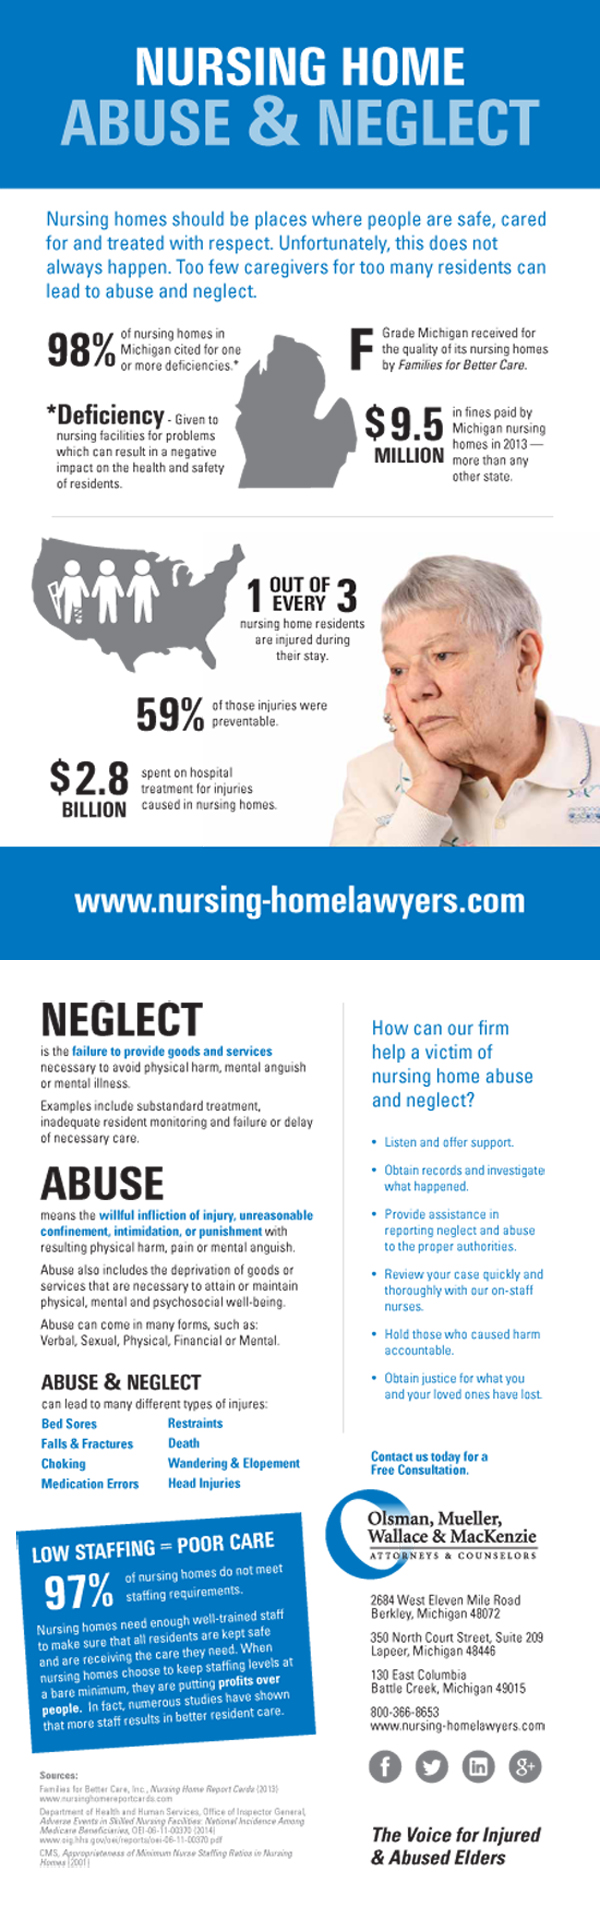 case study nursing home abuse